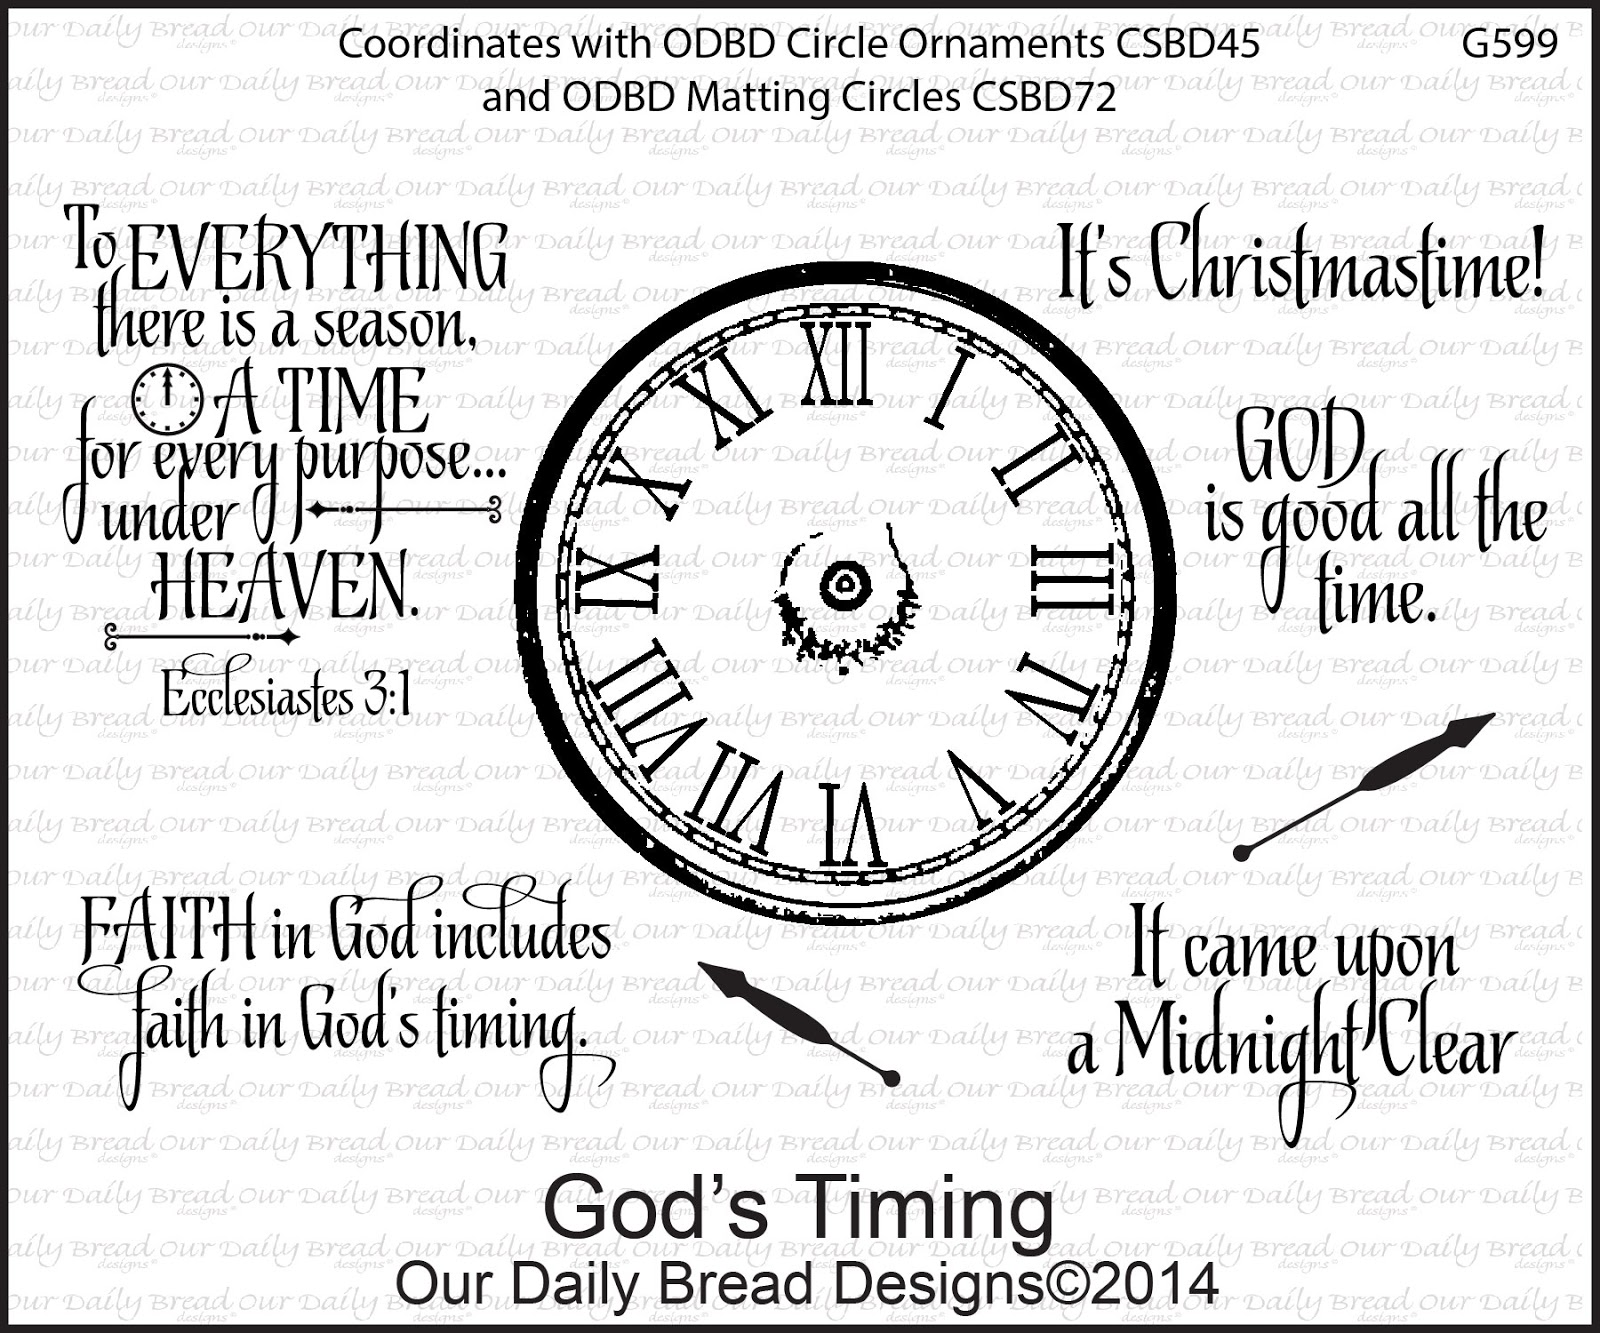 Stamps - Our Daily Bread Designs God's Timing